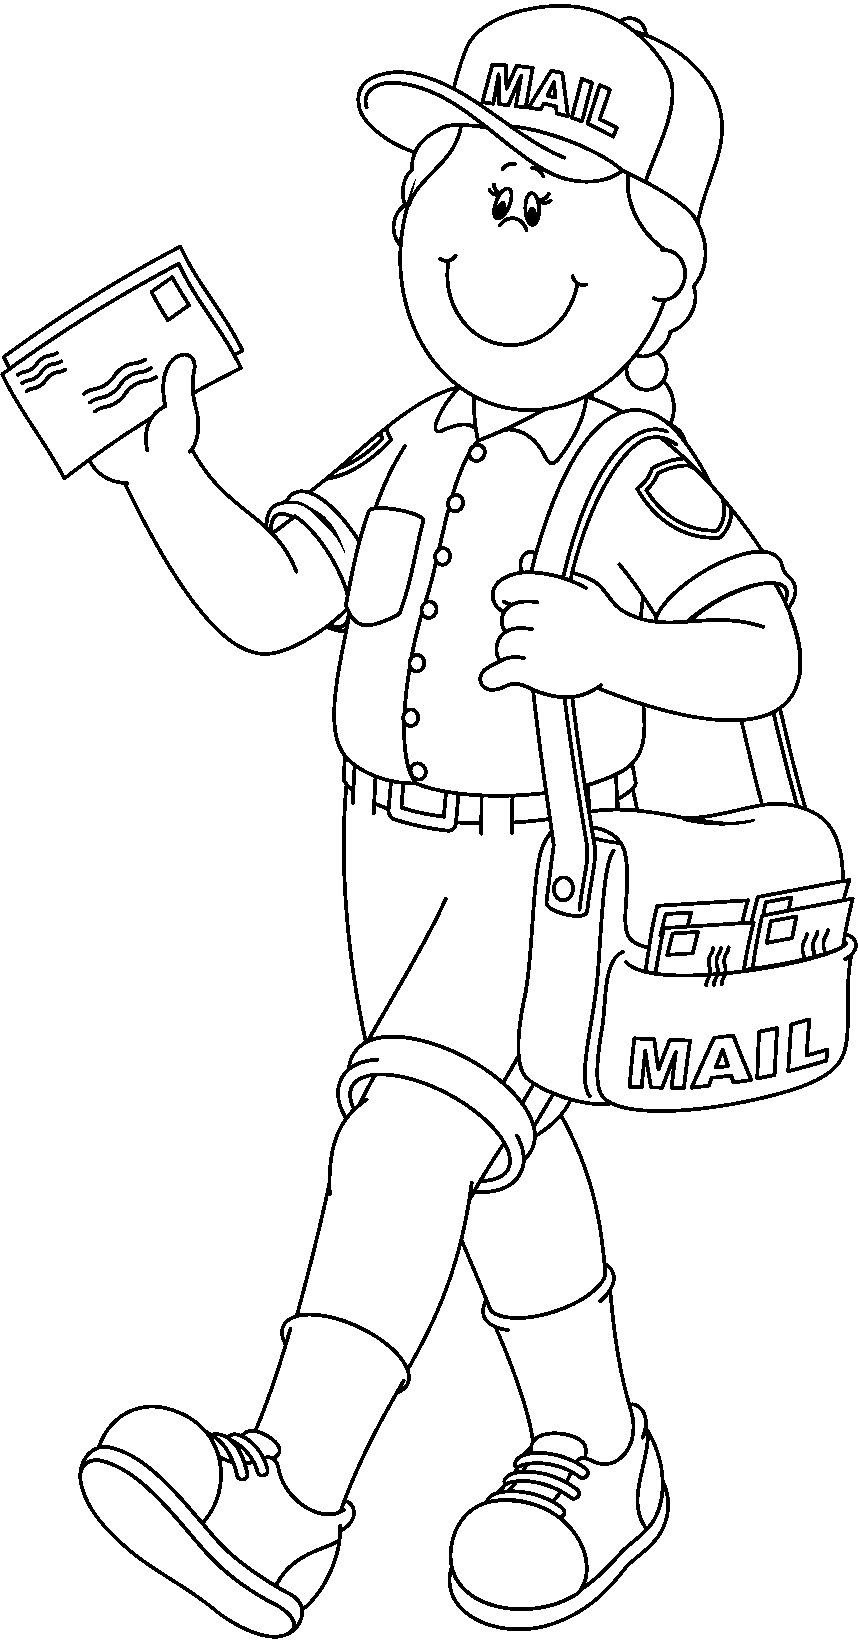 coloring pages community helper - photo#11